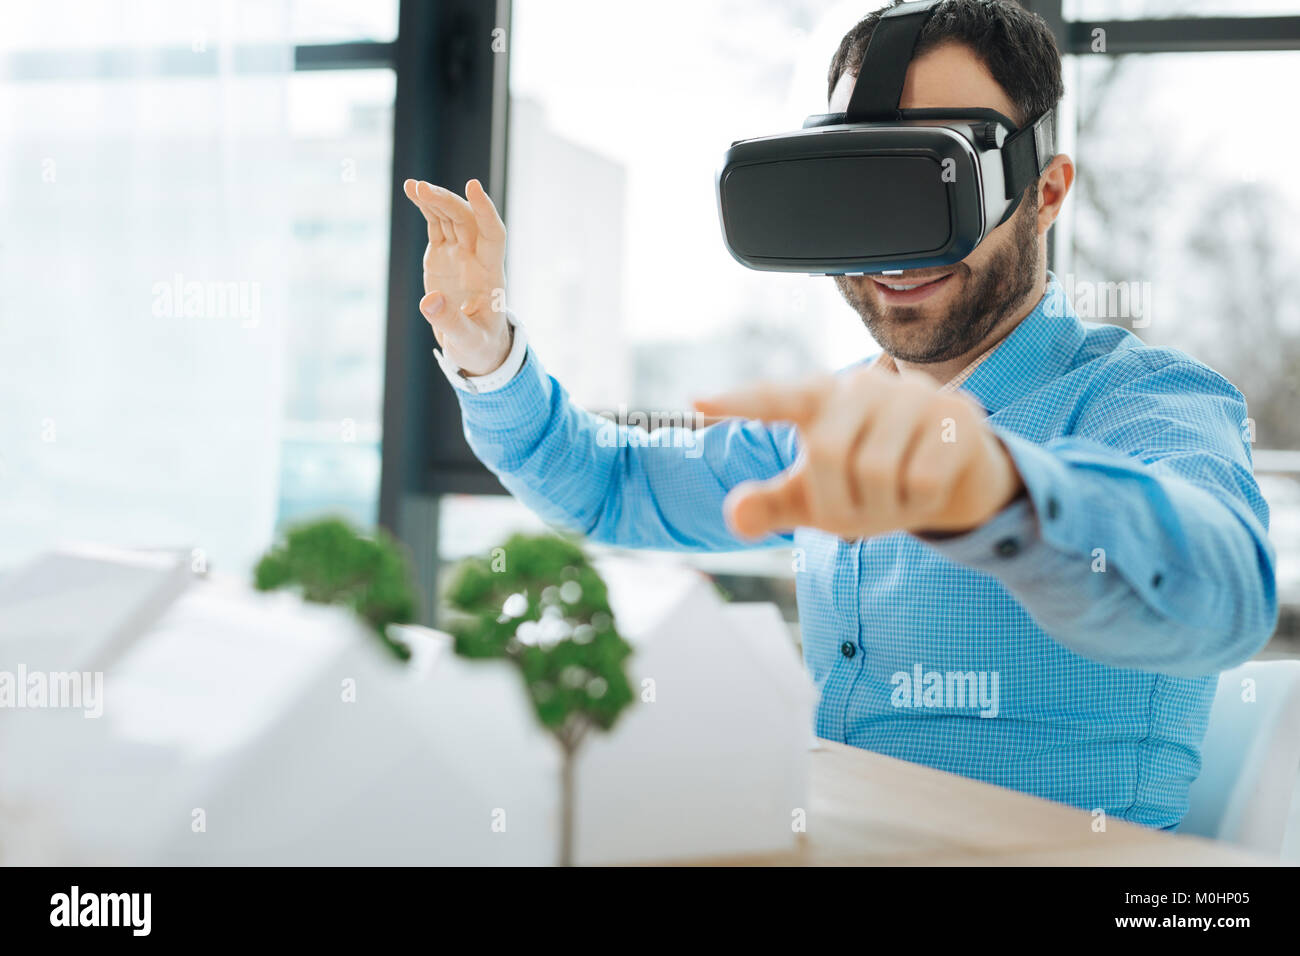 Smiling architect in VR headset pointing at house models - Stock Image